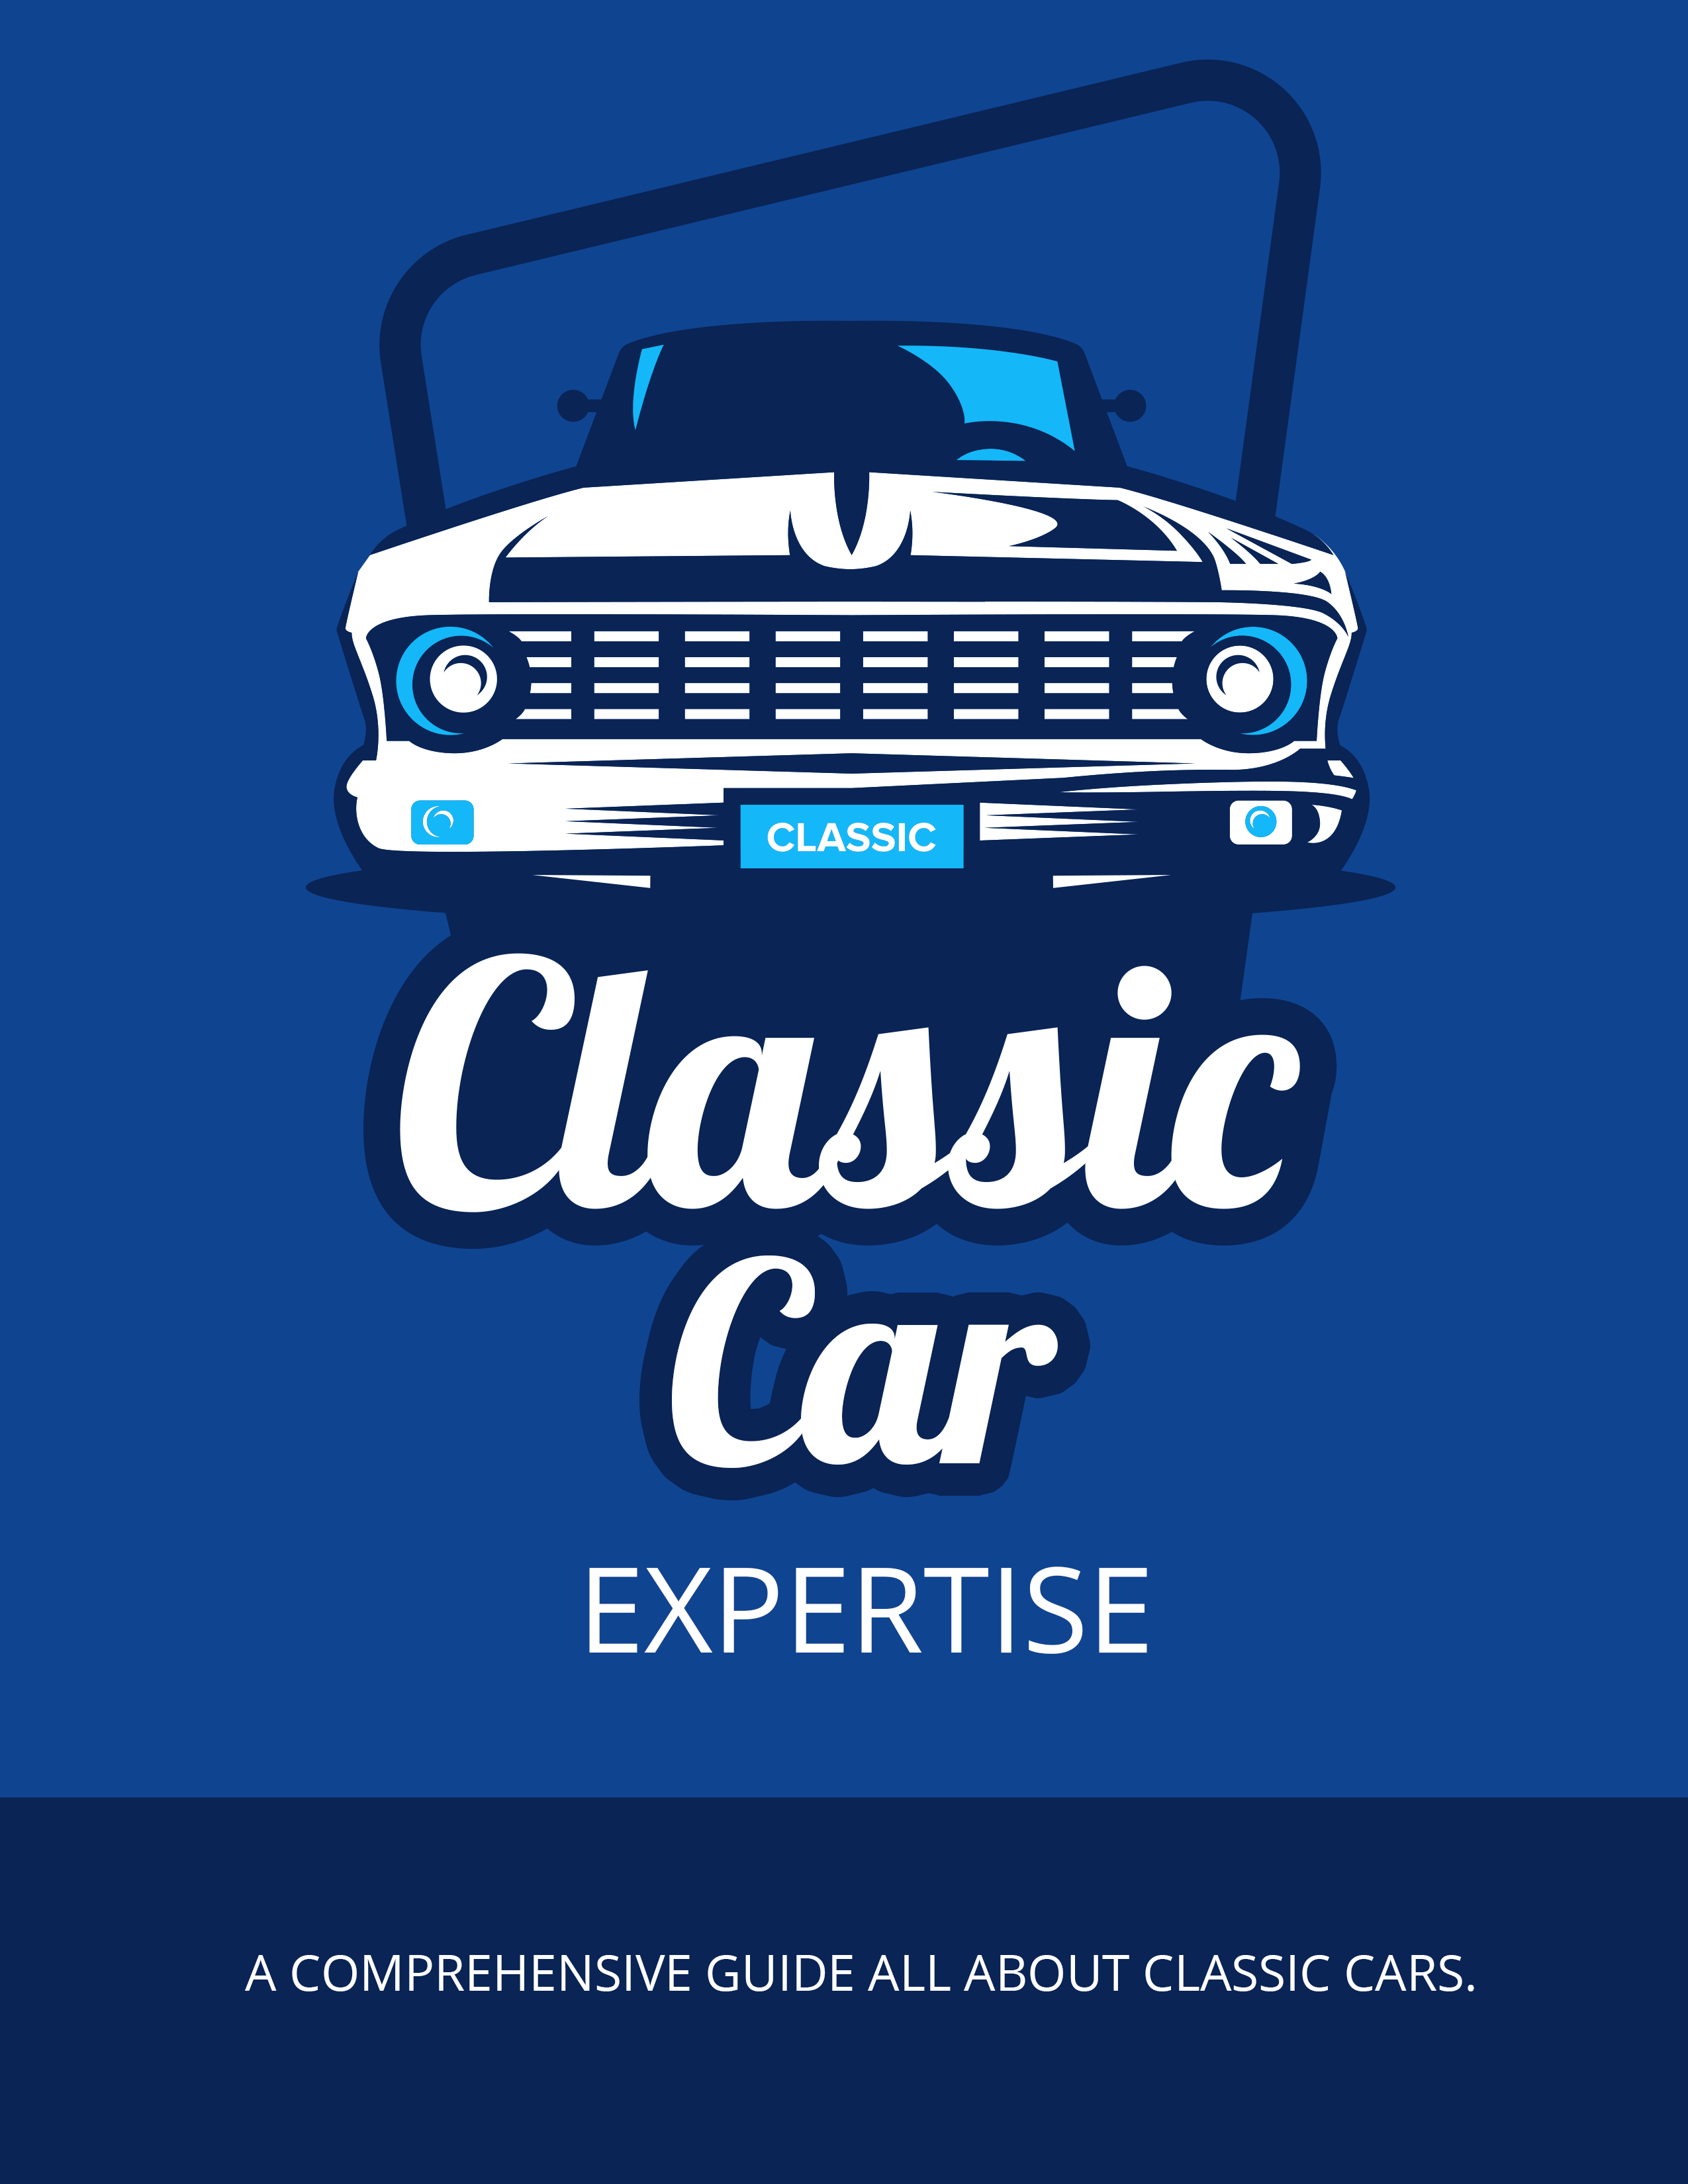 Classic Car Expertise (A Comprehensive Guide All About Classic Cars.) Ebook's Ebook Image